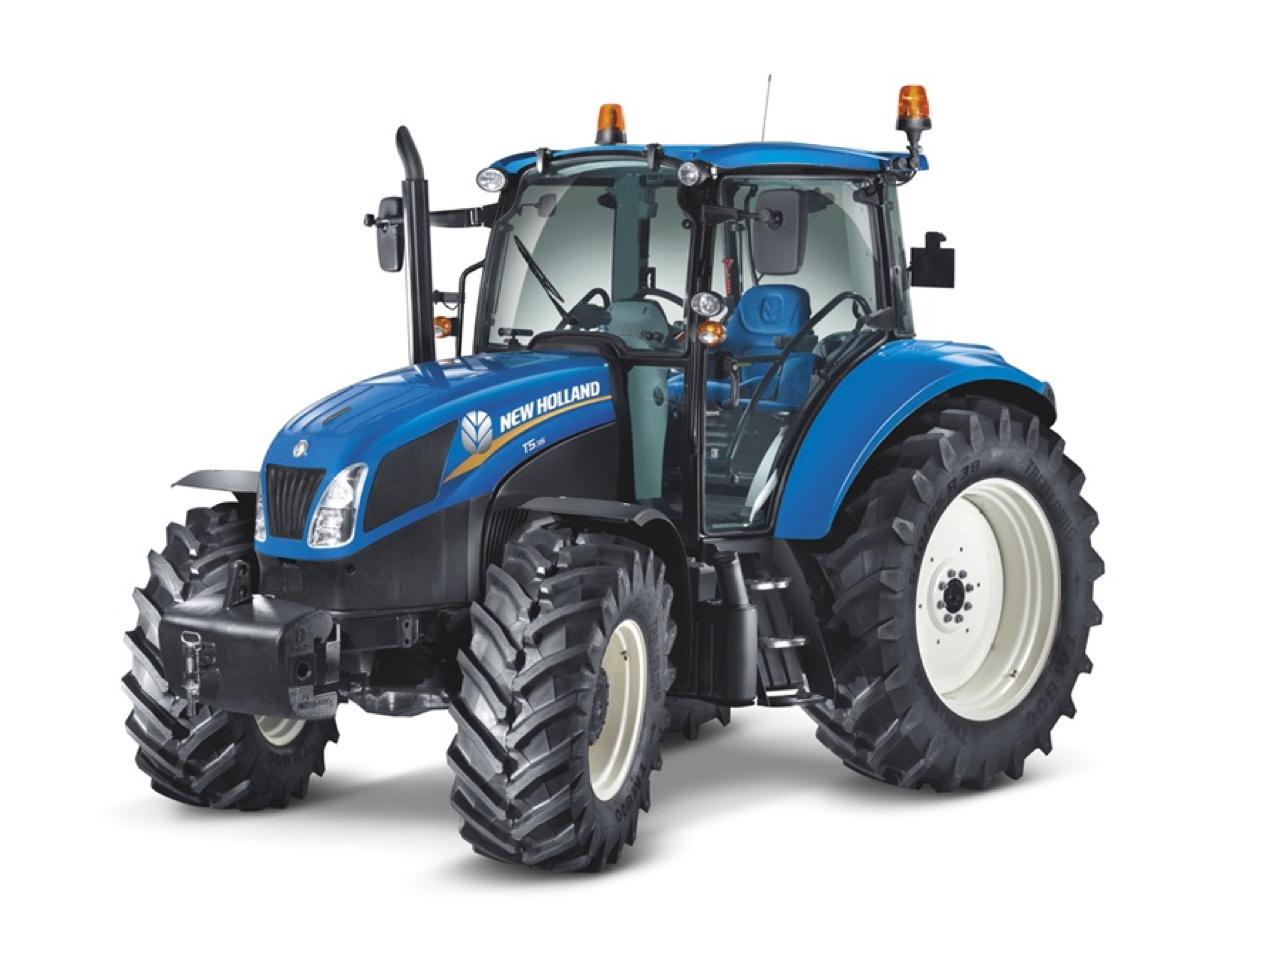 New Holland T5 Utility T5.95 Utility